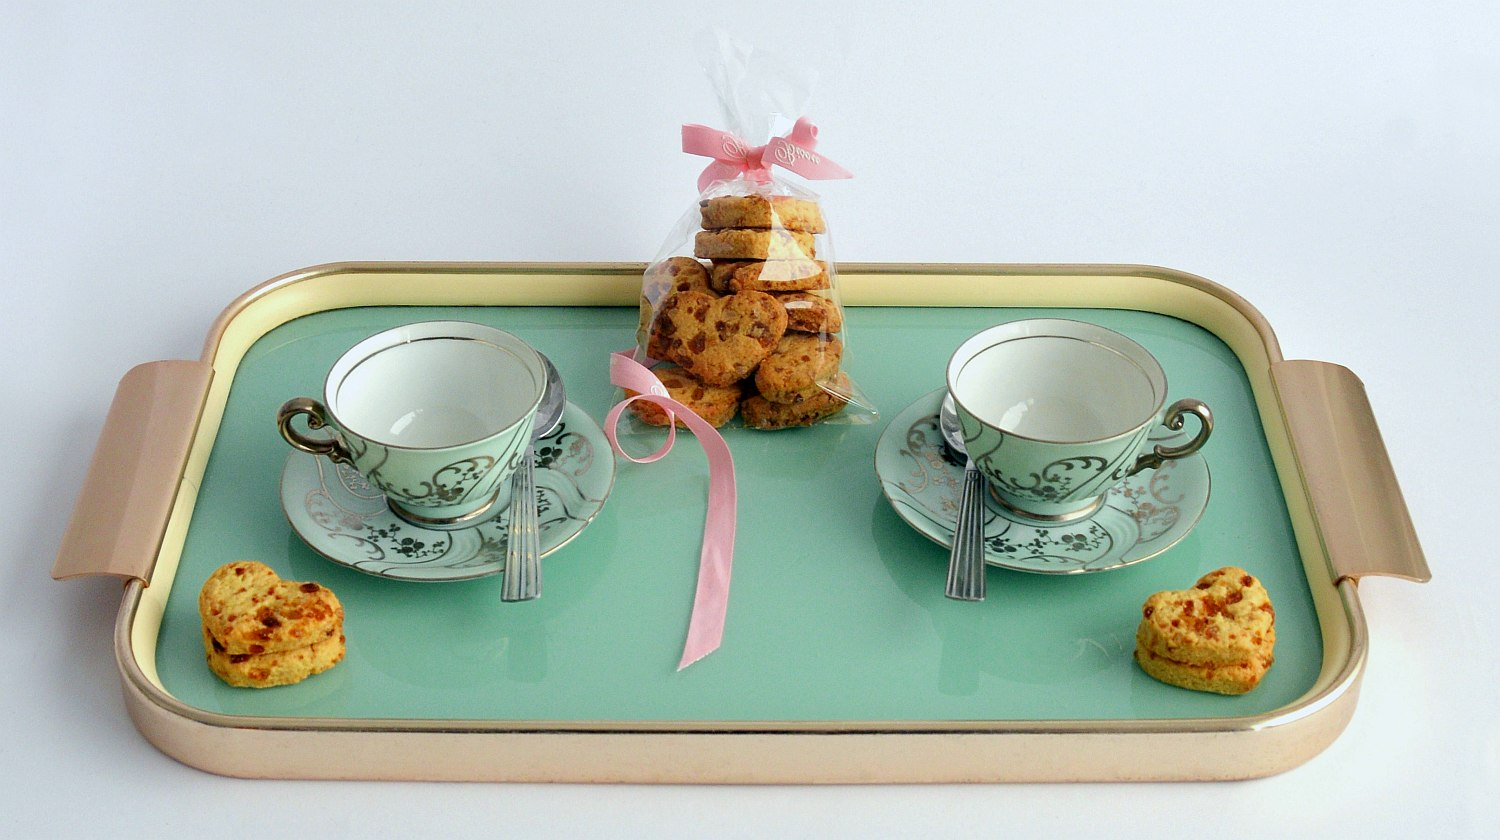 Feature | Tea cups and cookies | Spectacular DIY Kids Tea Party Ideas | tea party menu ideas for adults